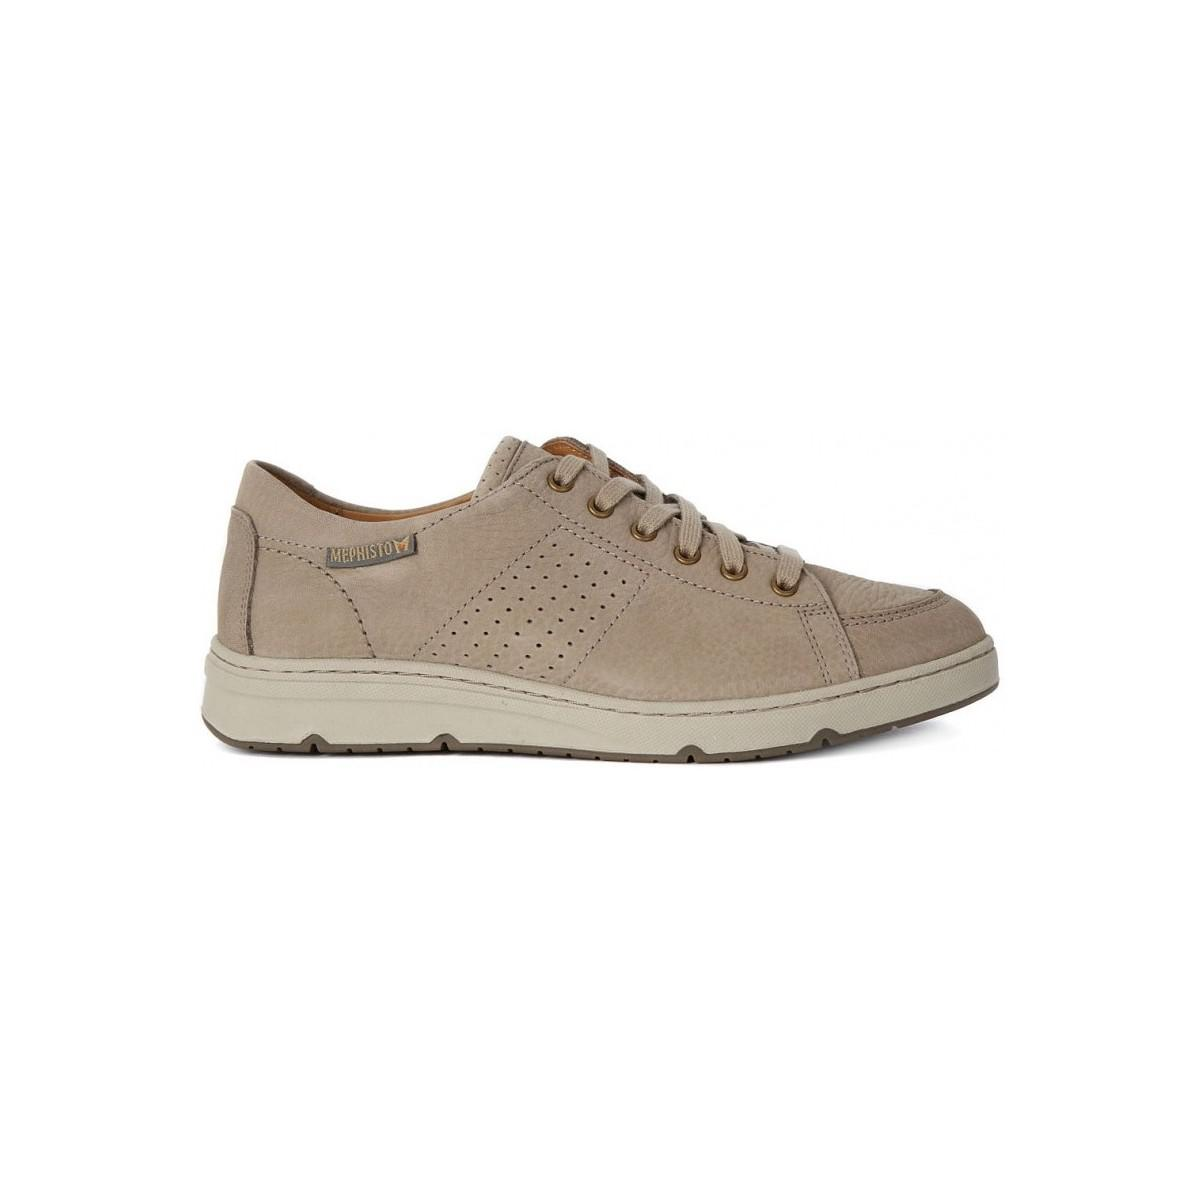 Mephisto Jerome Sportbuck Men's Shoes (trainers) In Beige in Natural for Men